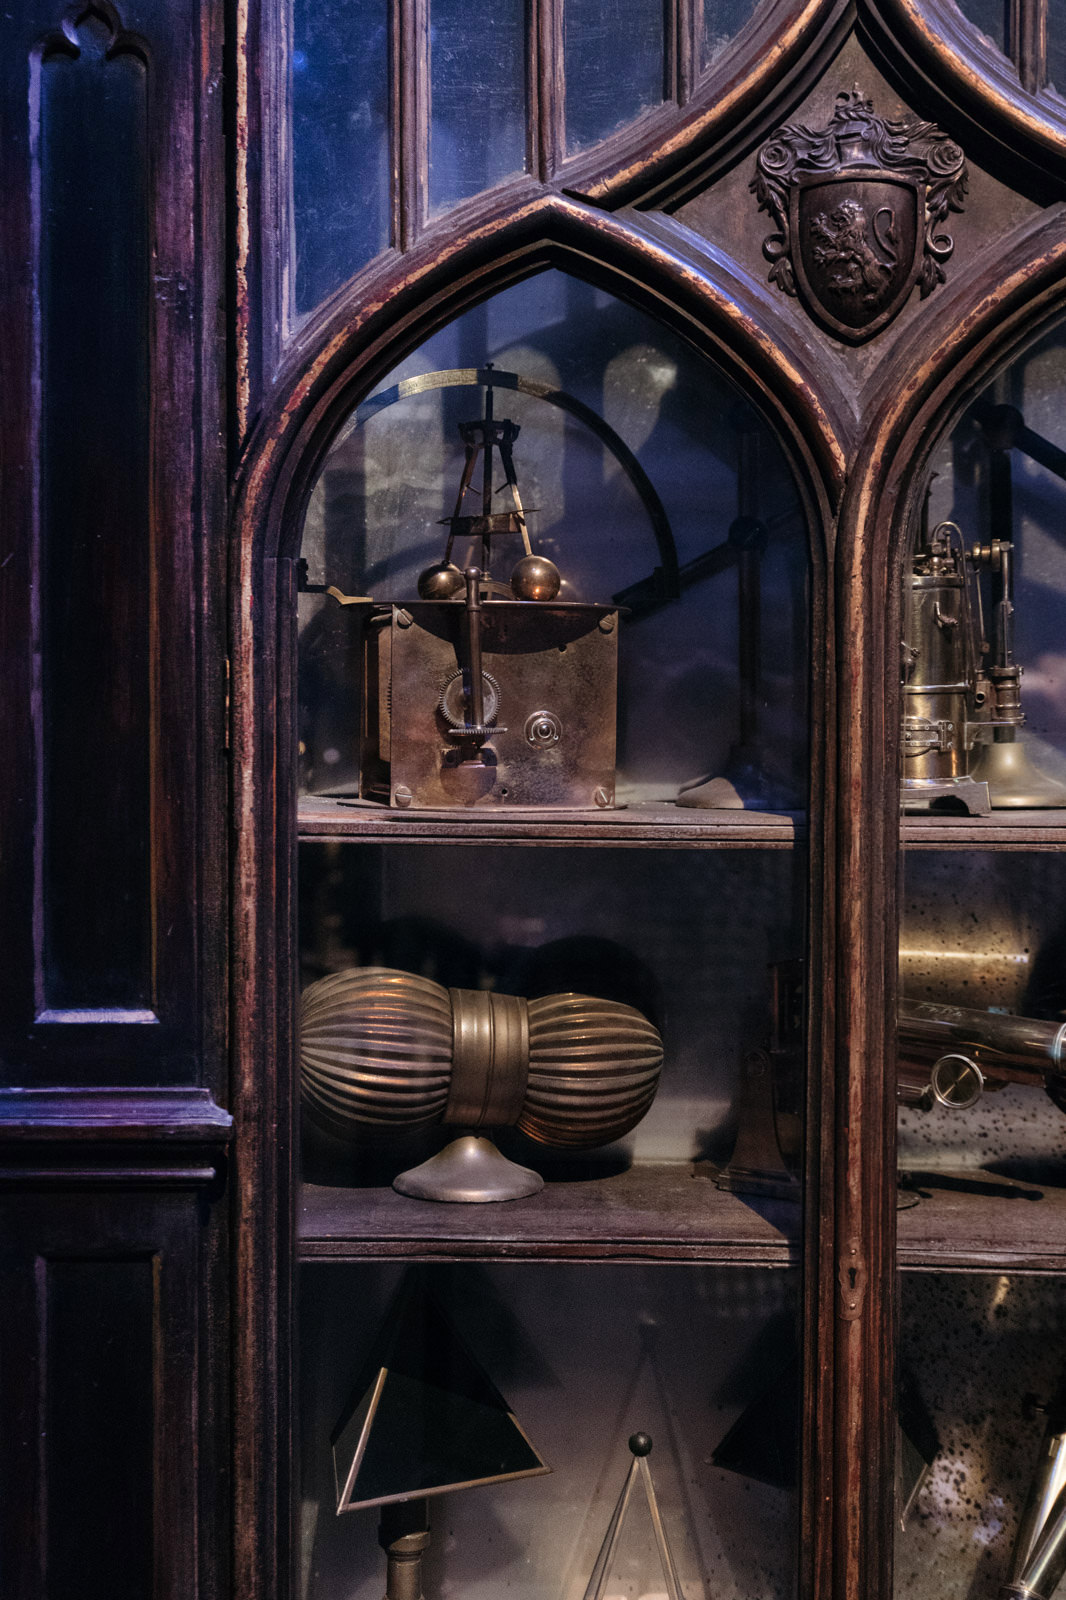 Blog-Mode-And-The-City-Lifestyle-Visite-Studios-Harry-Potter-Londres-13